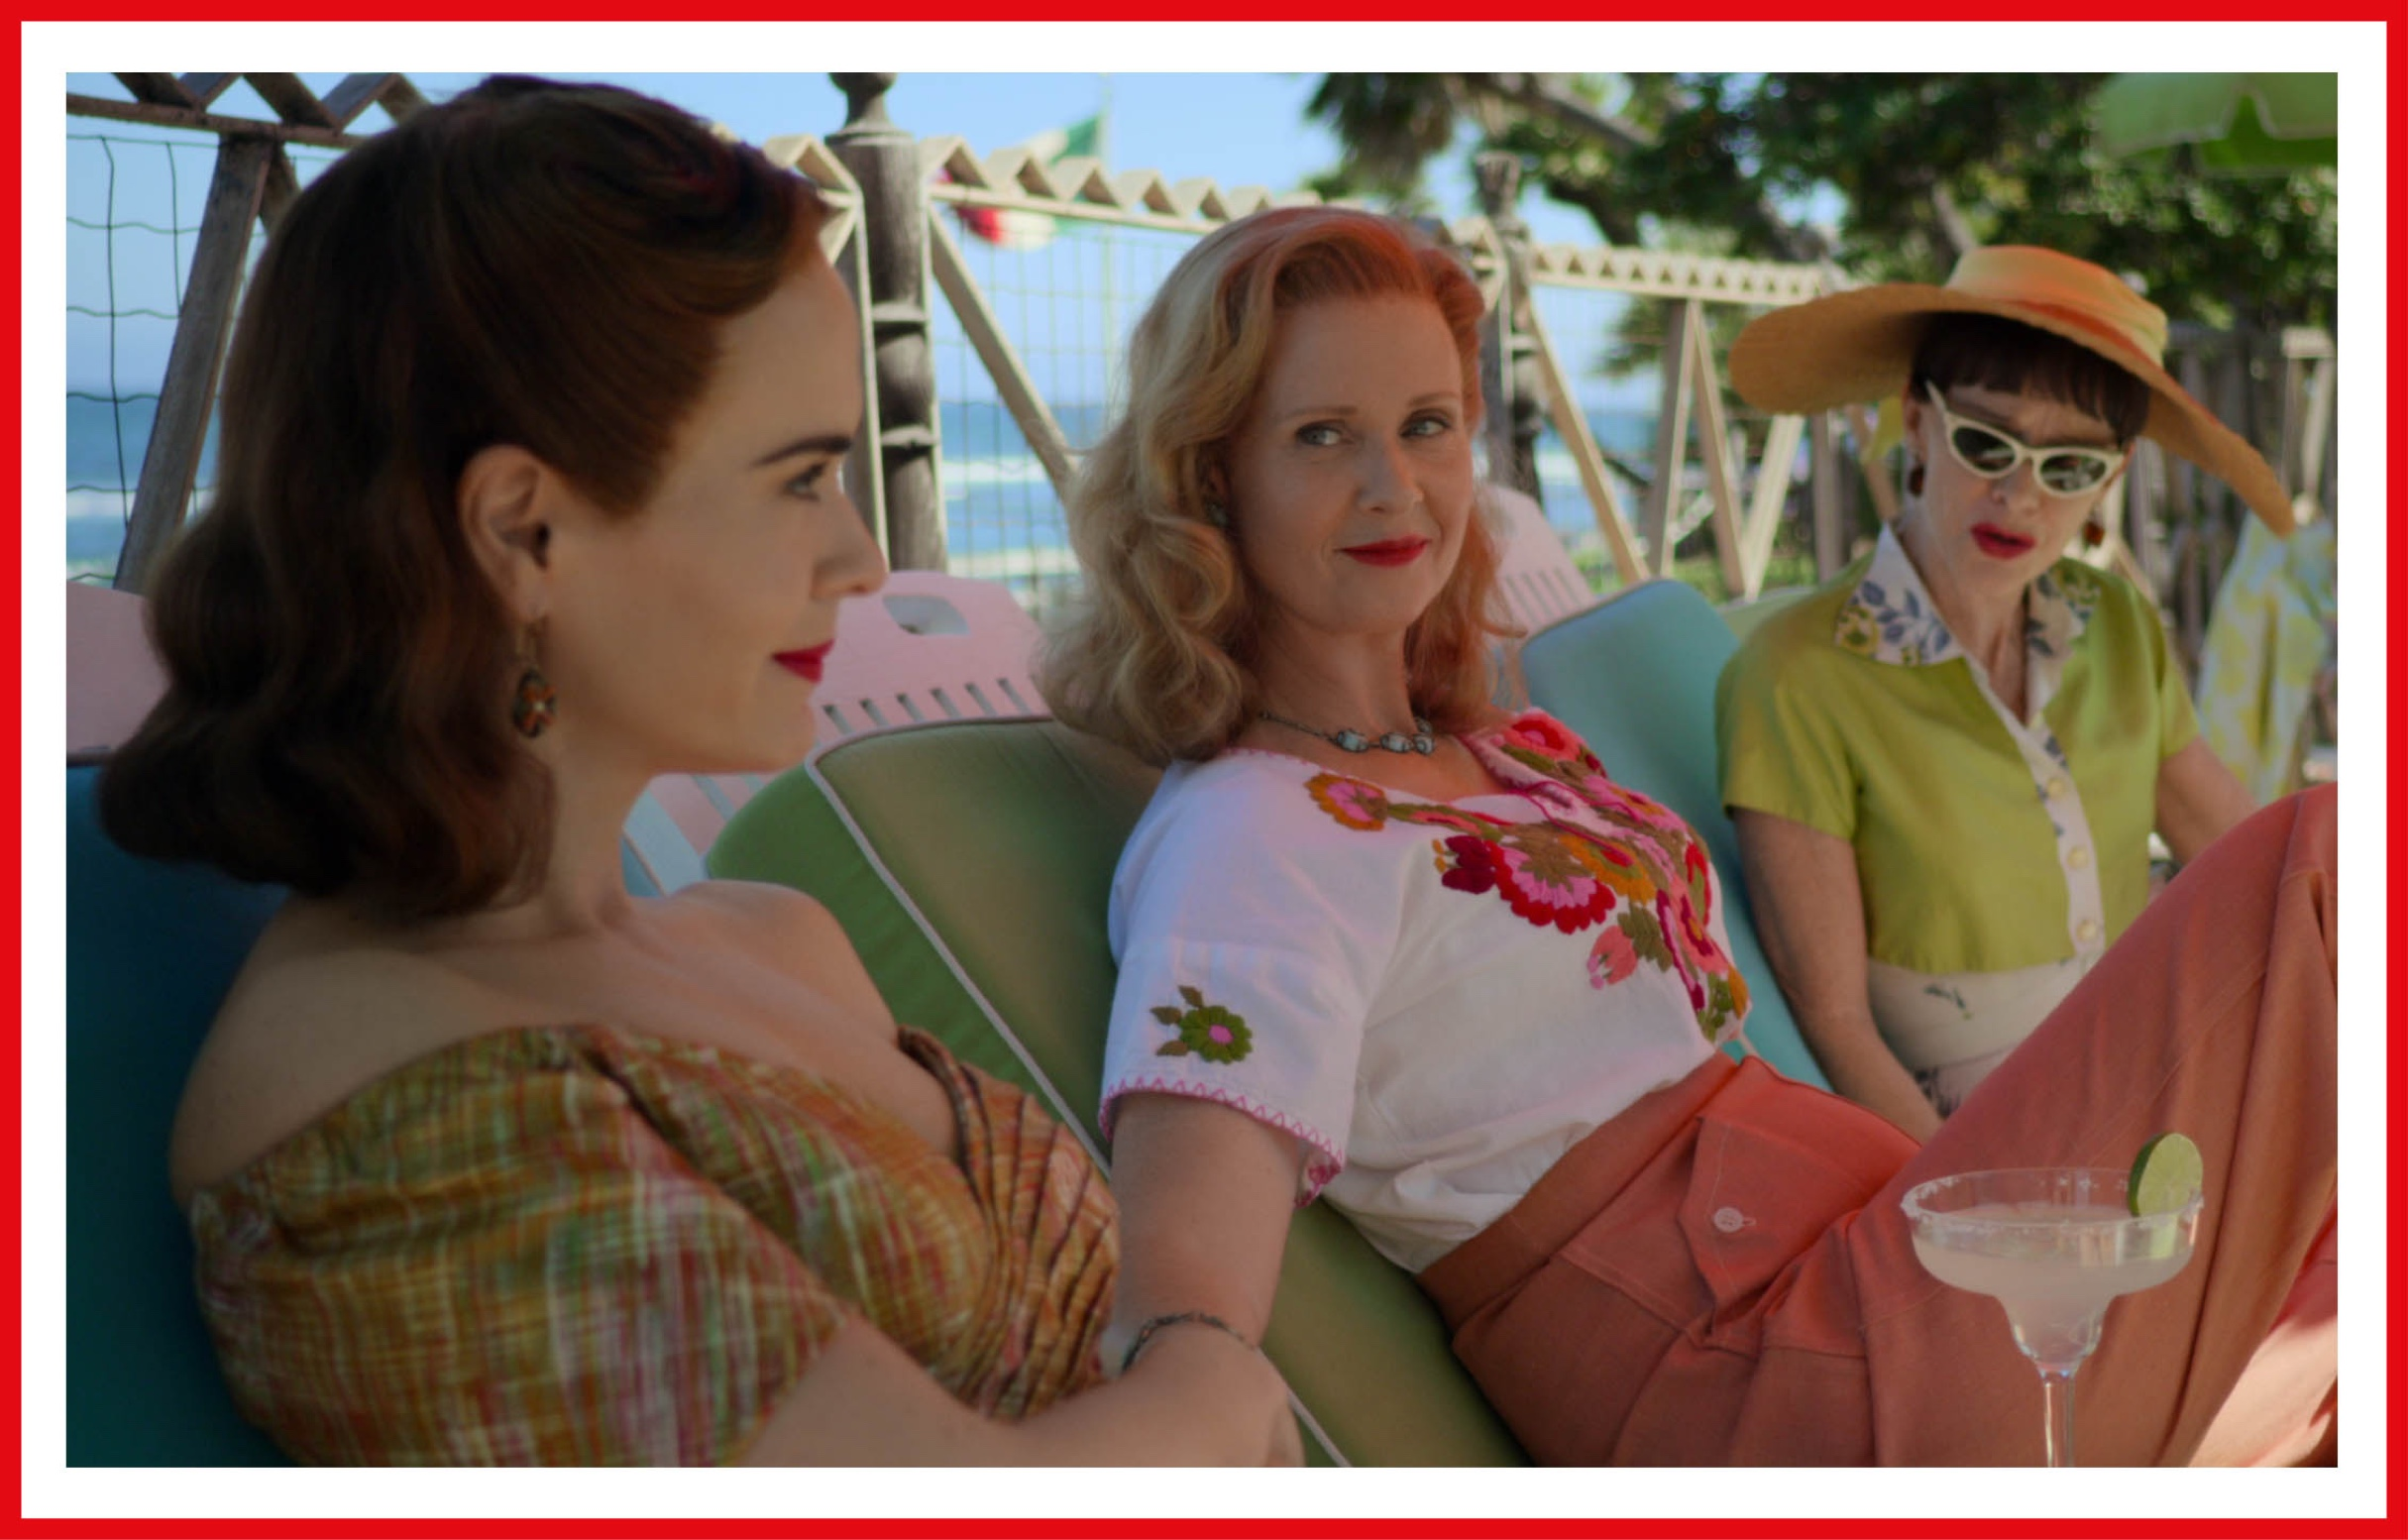 Cynthia Nixon and Sarah Paulson both sport a strong red lip in a scene from Ratched